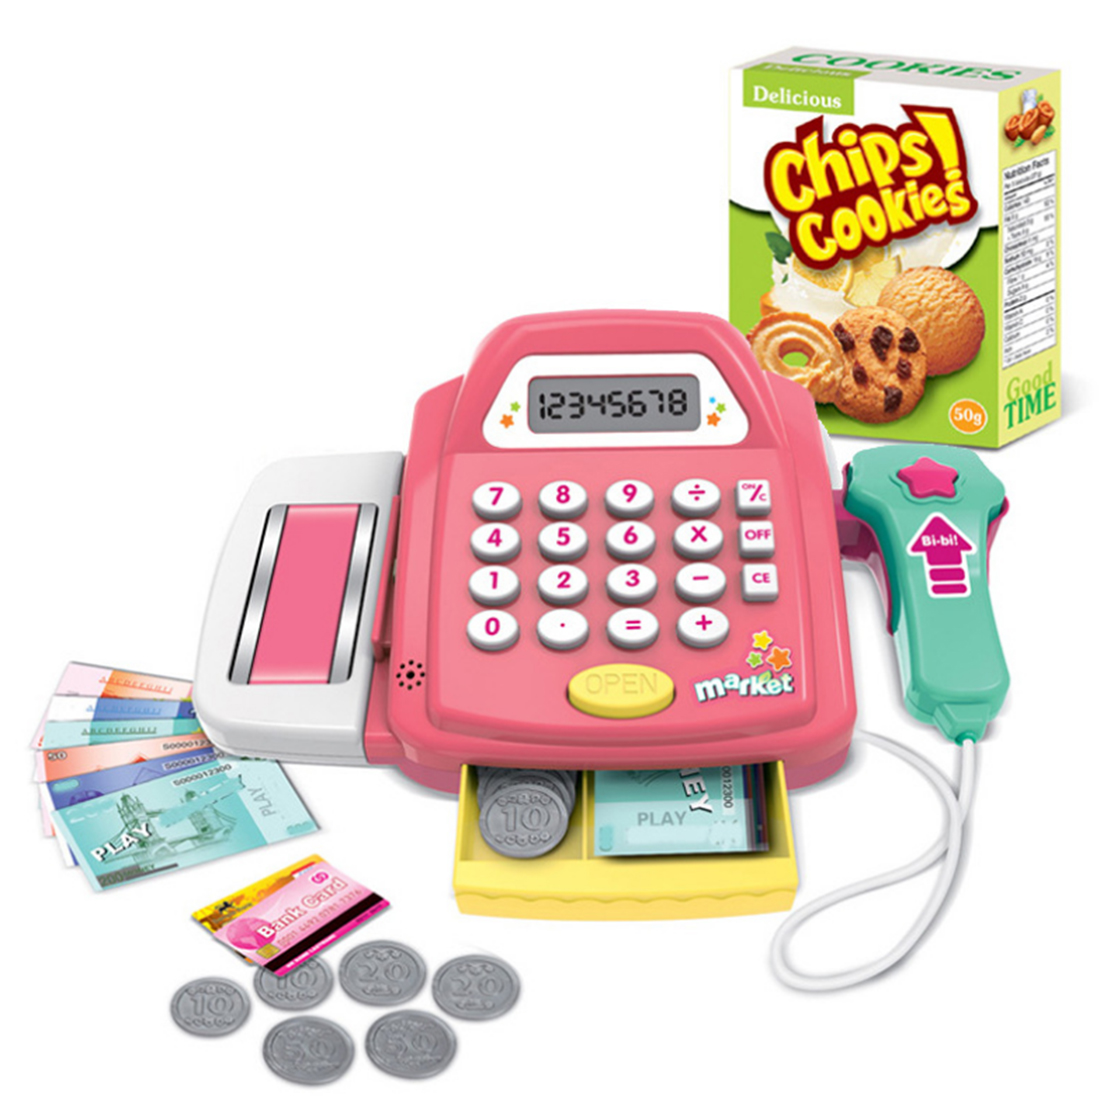 Funny Pretend Play Furniture Toy set Cash Register Cashier Children Kids Early Educational Toys for Boys Girls - Pink Blue Lahore